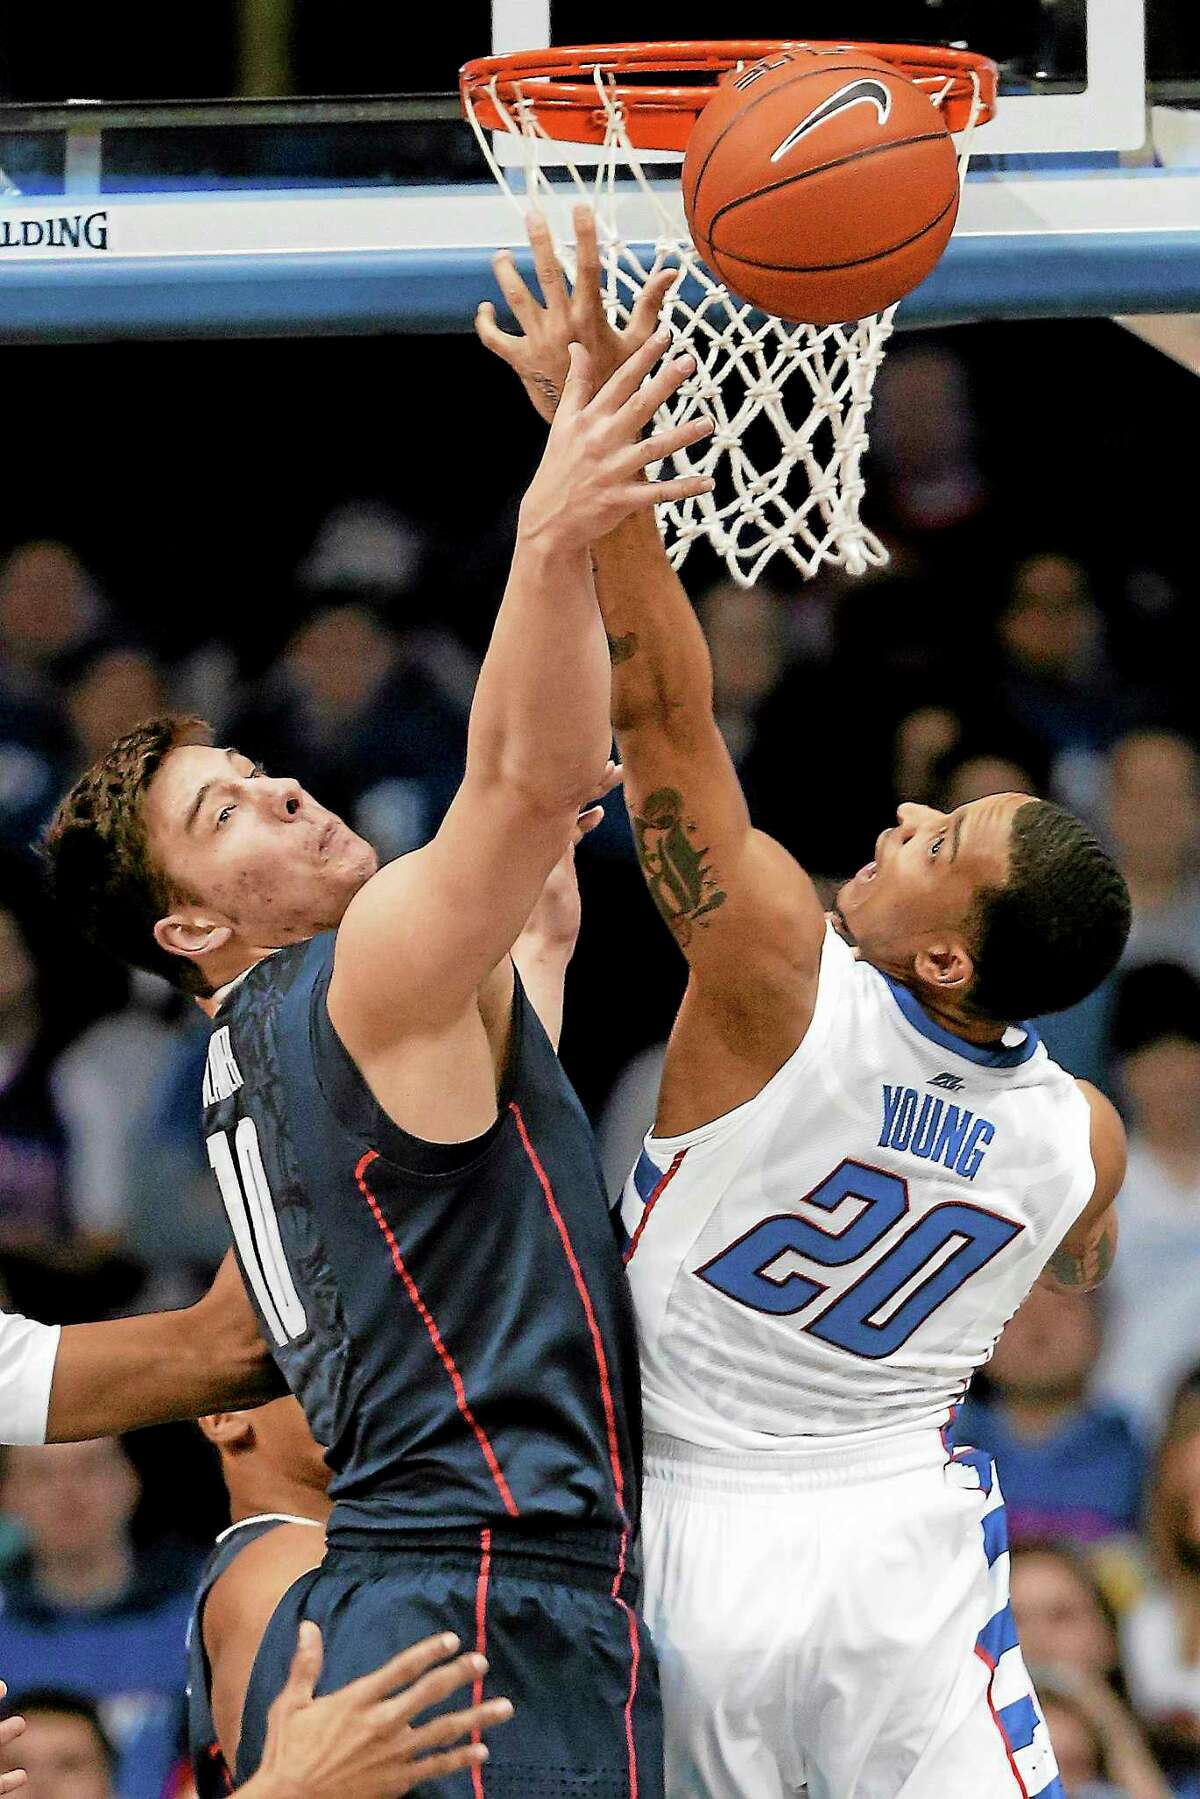 UConn forward Tyler Olander, left, and DePaul guard Brandon Young battle for a rebound during a game last season in Rosemont, Ill.